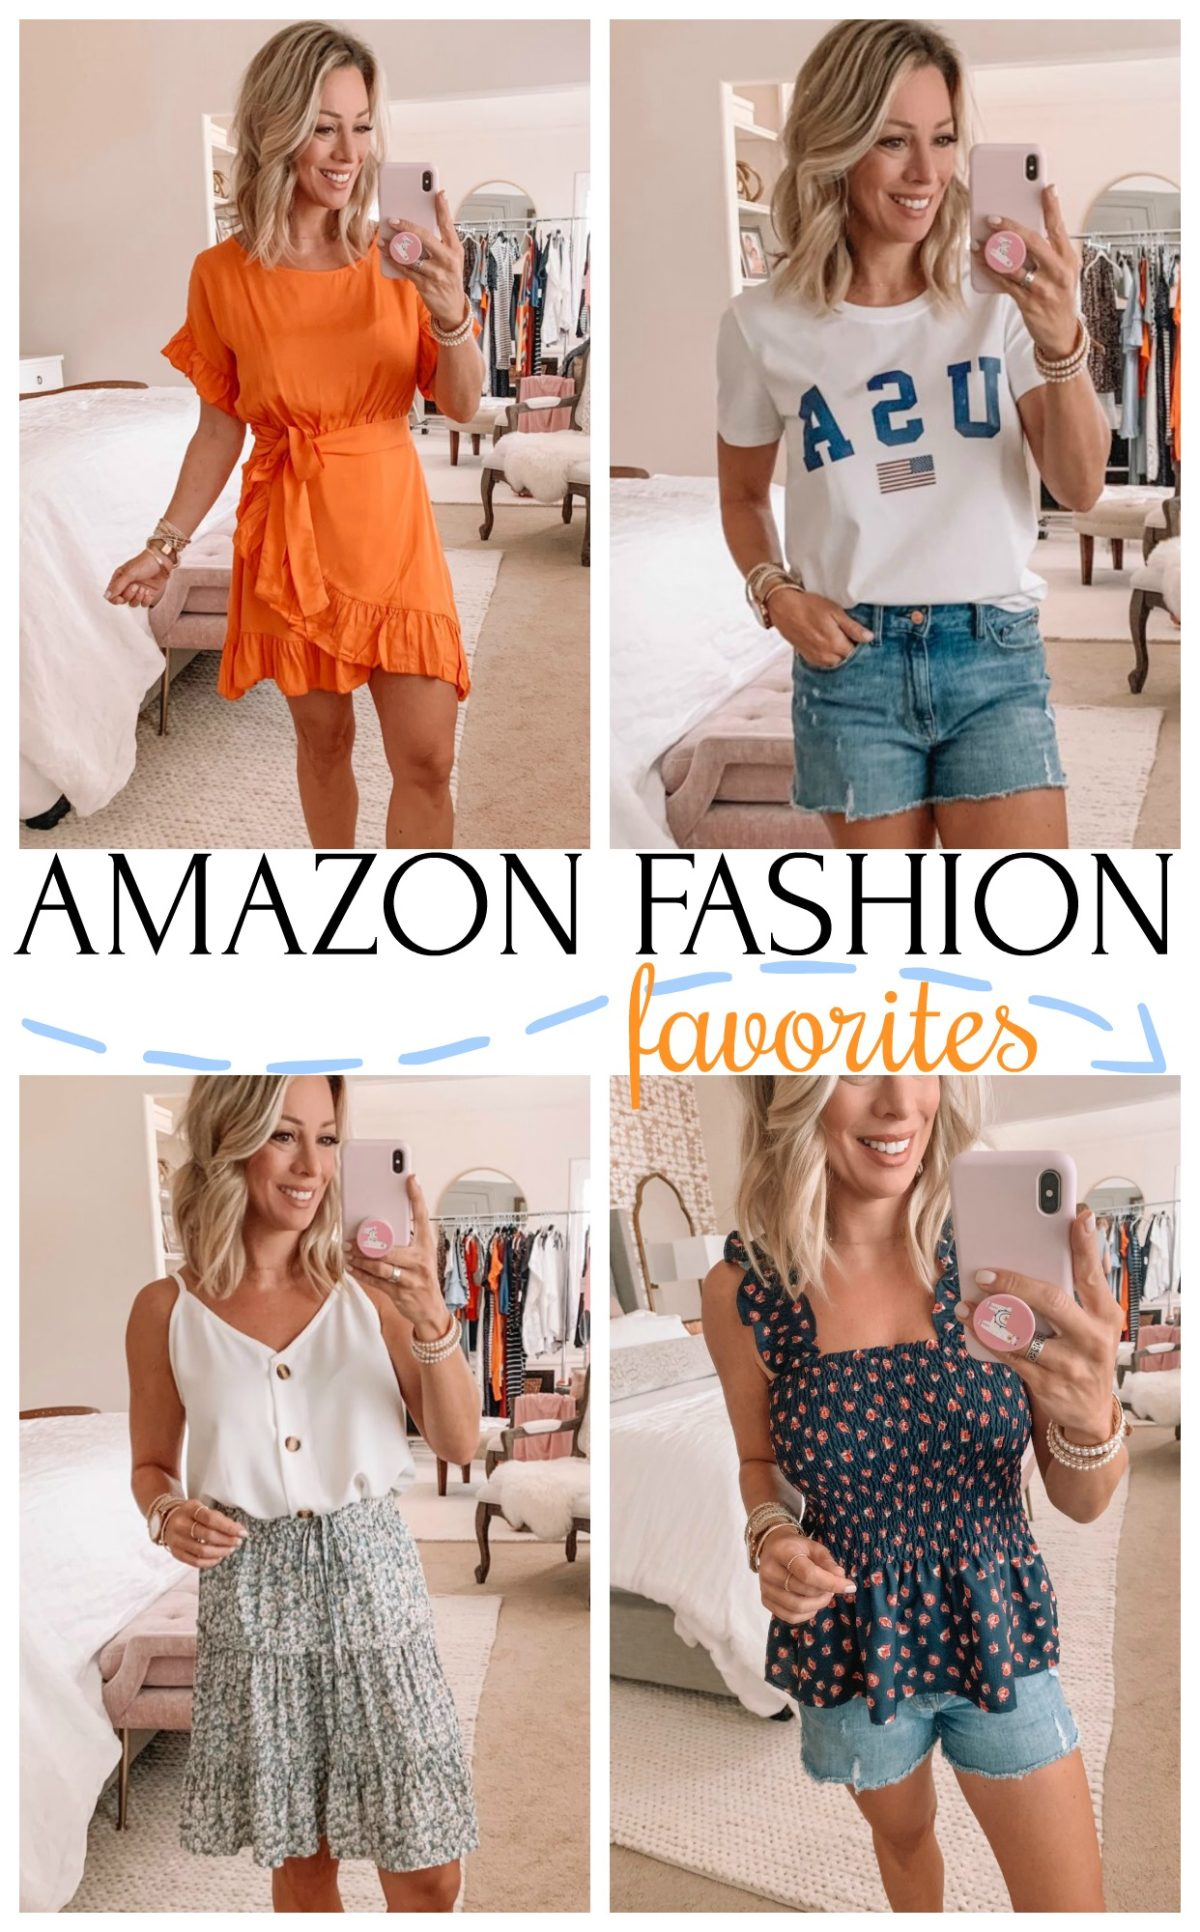 Amazon Fashion favorites